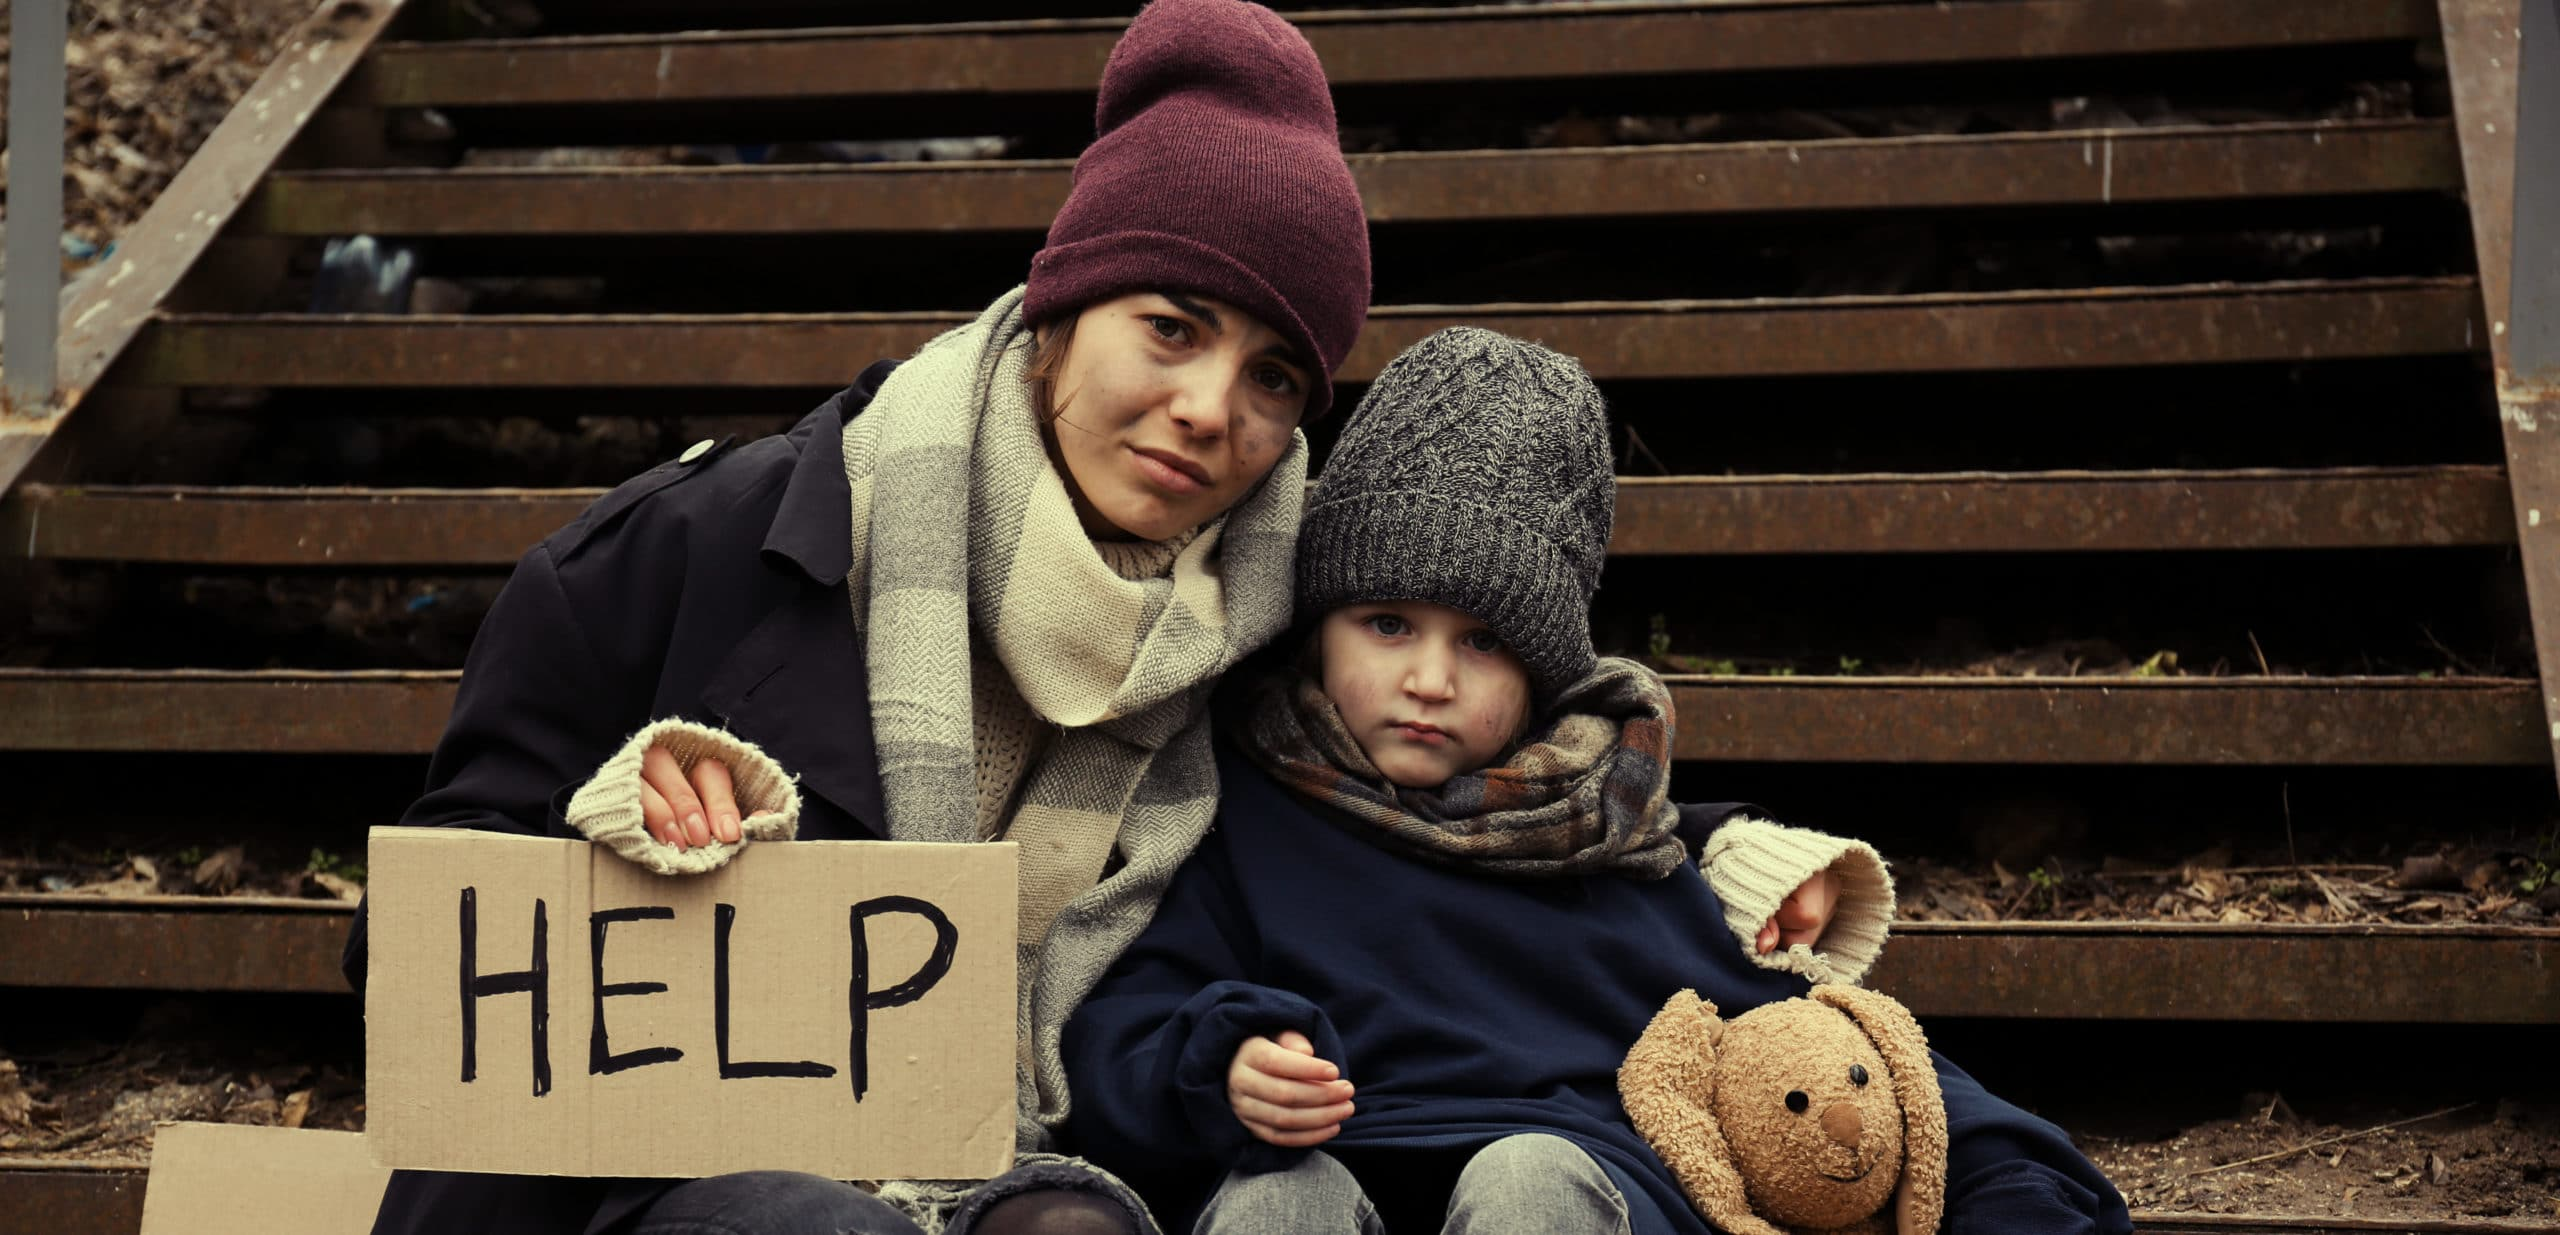 Poor mother and daughter with HELP sign sitting on stairs outdoors